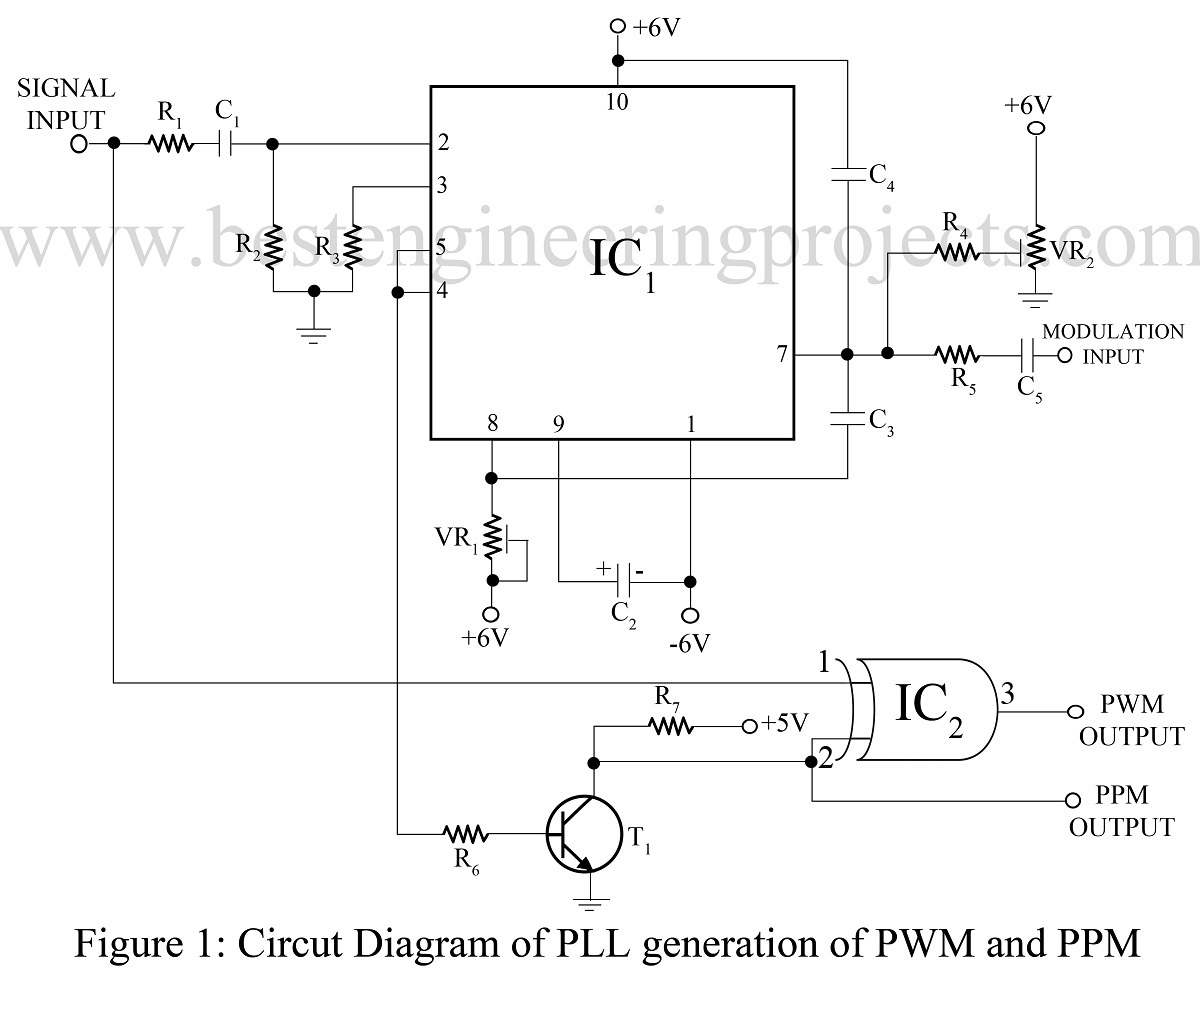 hight resolution of ppm wiring diagram wiring diagram loc ppm wiring diagram ppm wiring diagram